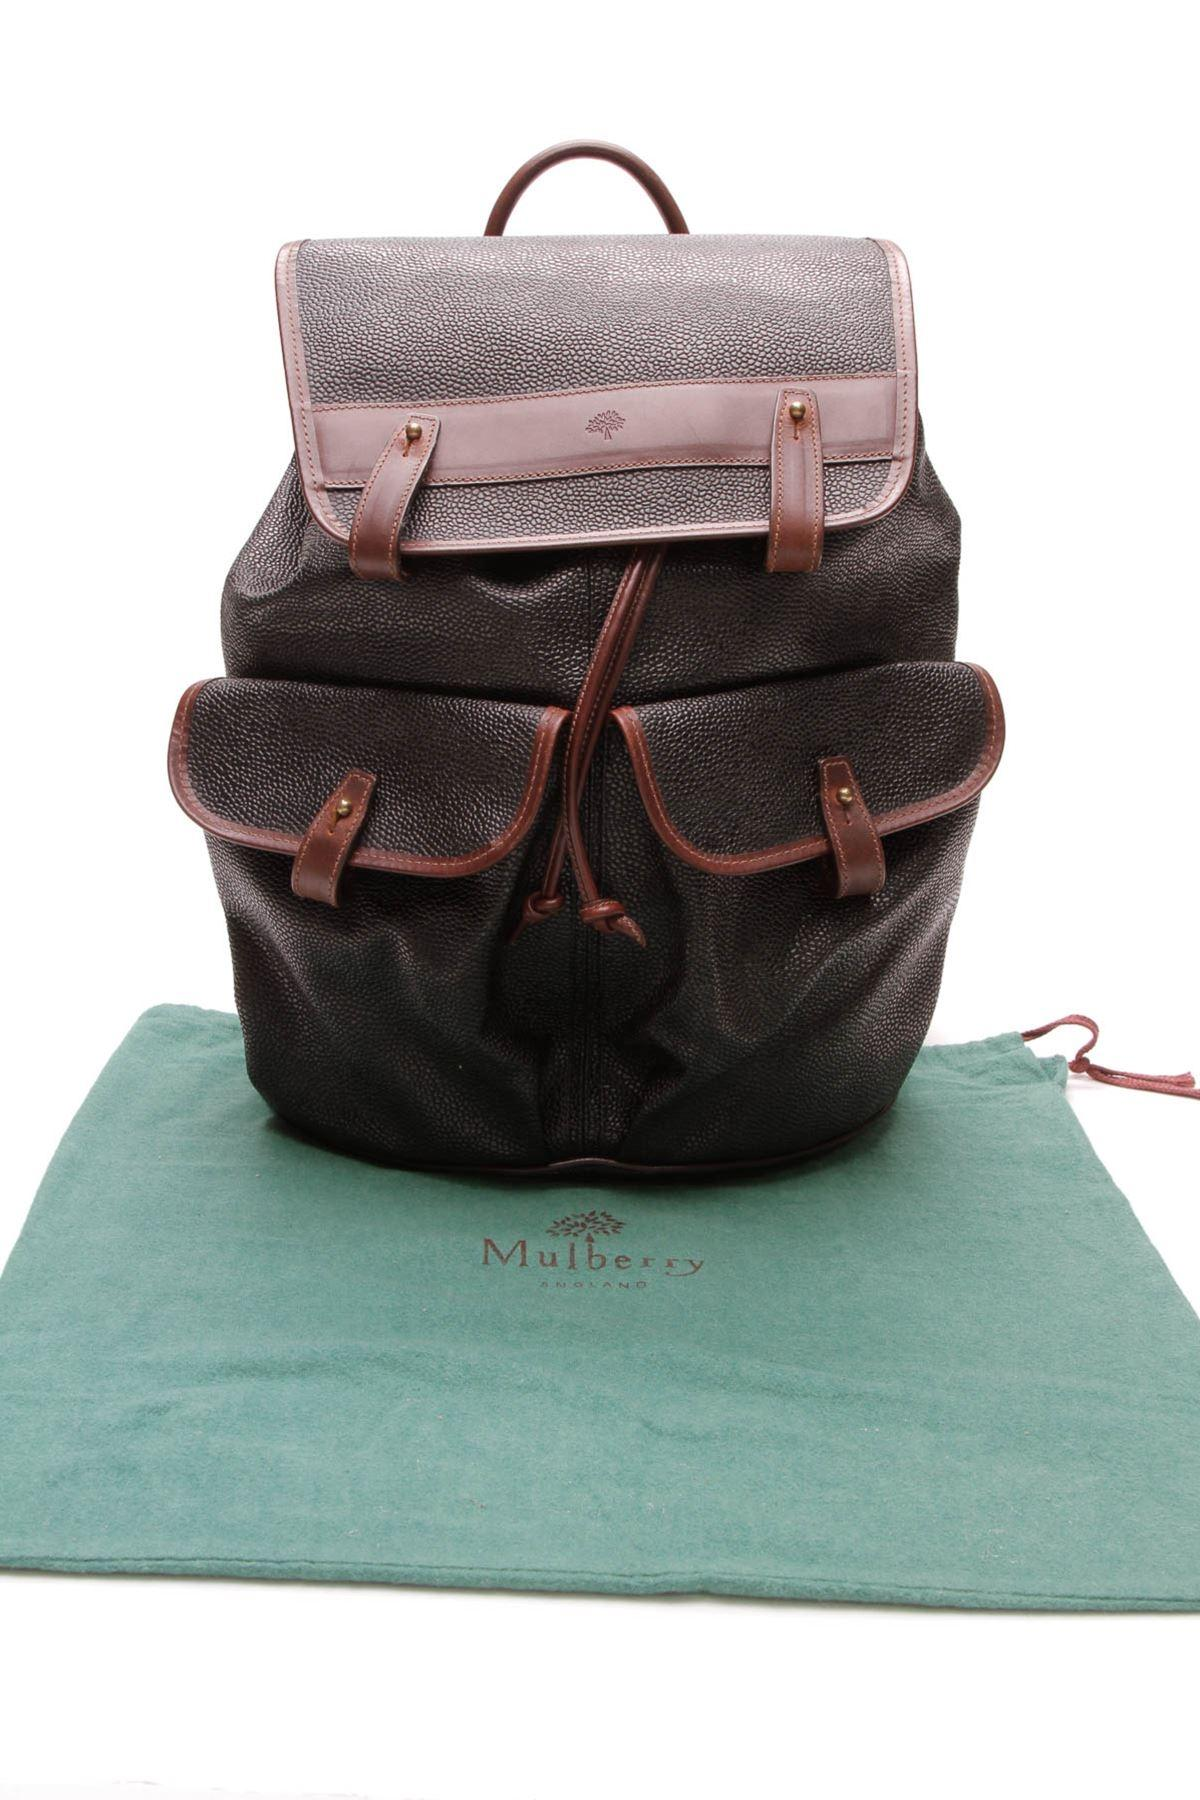 greece image is loading vintage mulberry black leather backpack ruck sack  grab 2ffec 18efc  promo code for mulberry backpack. 123456789101112 e8538  f5589 b68b5f47b3578